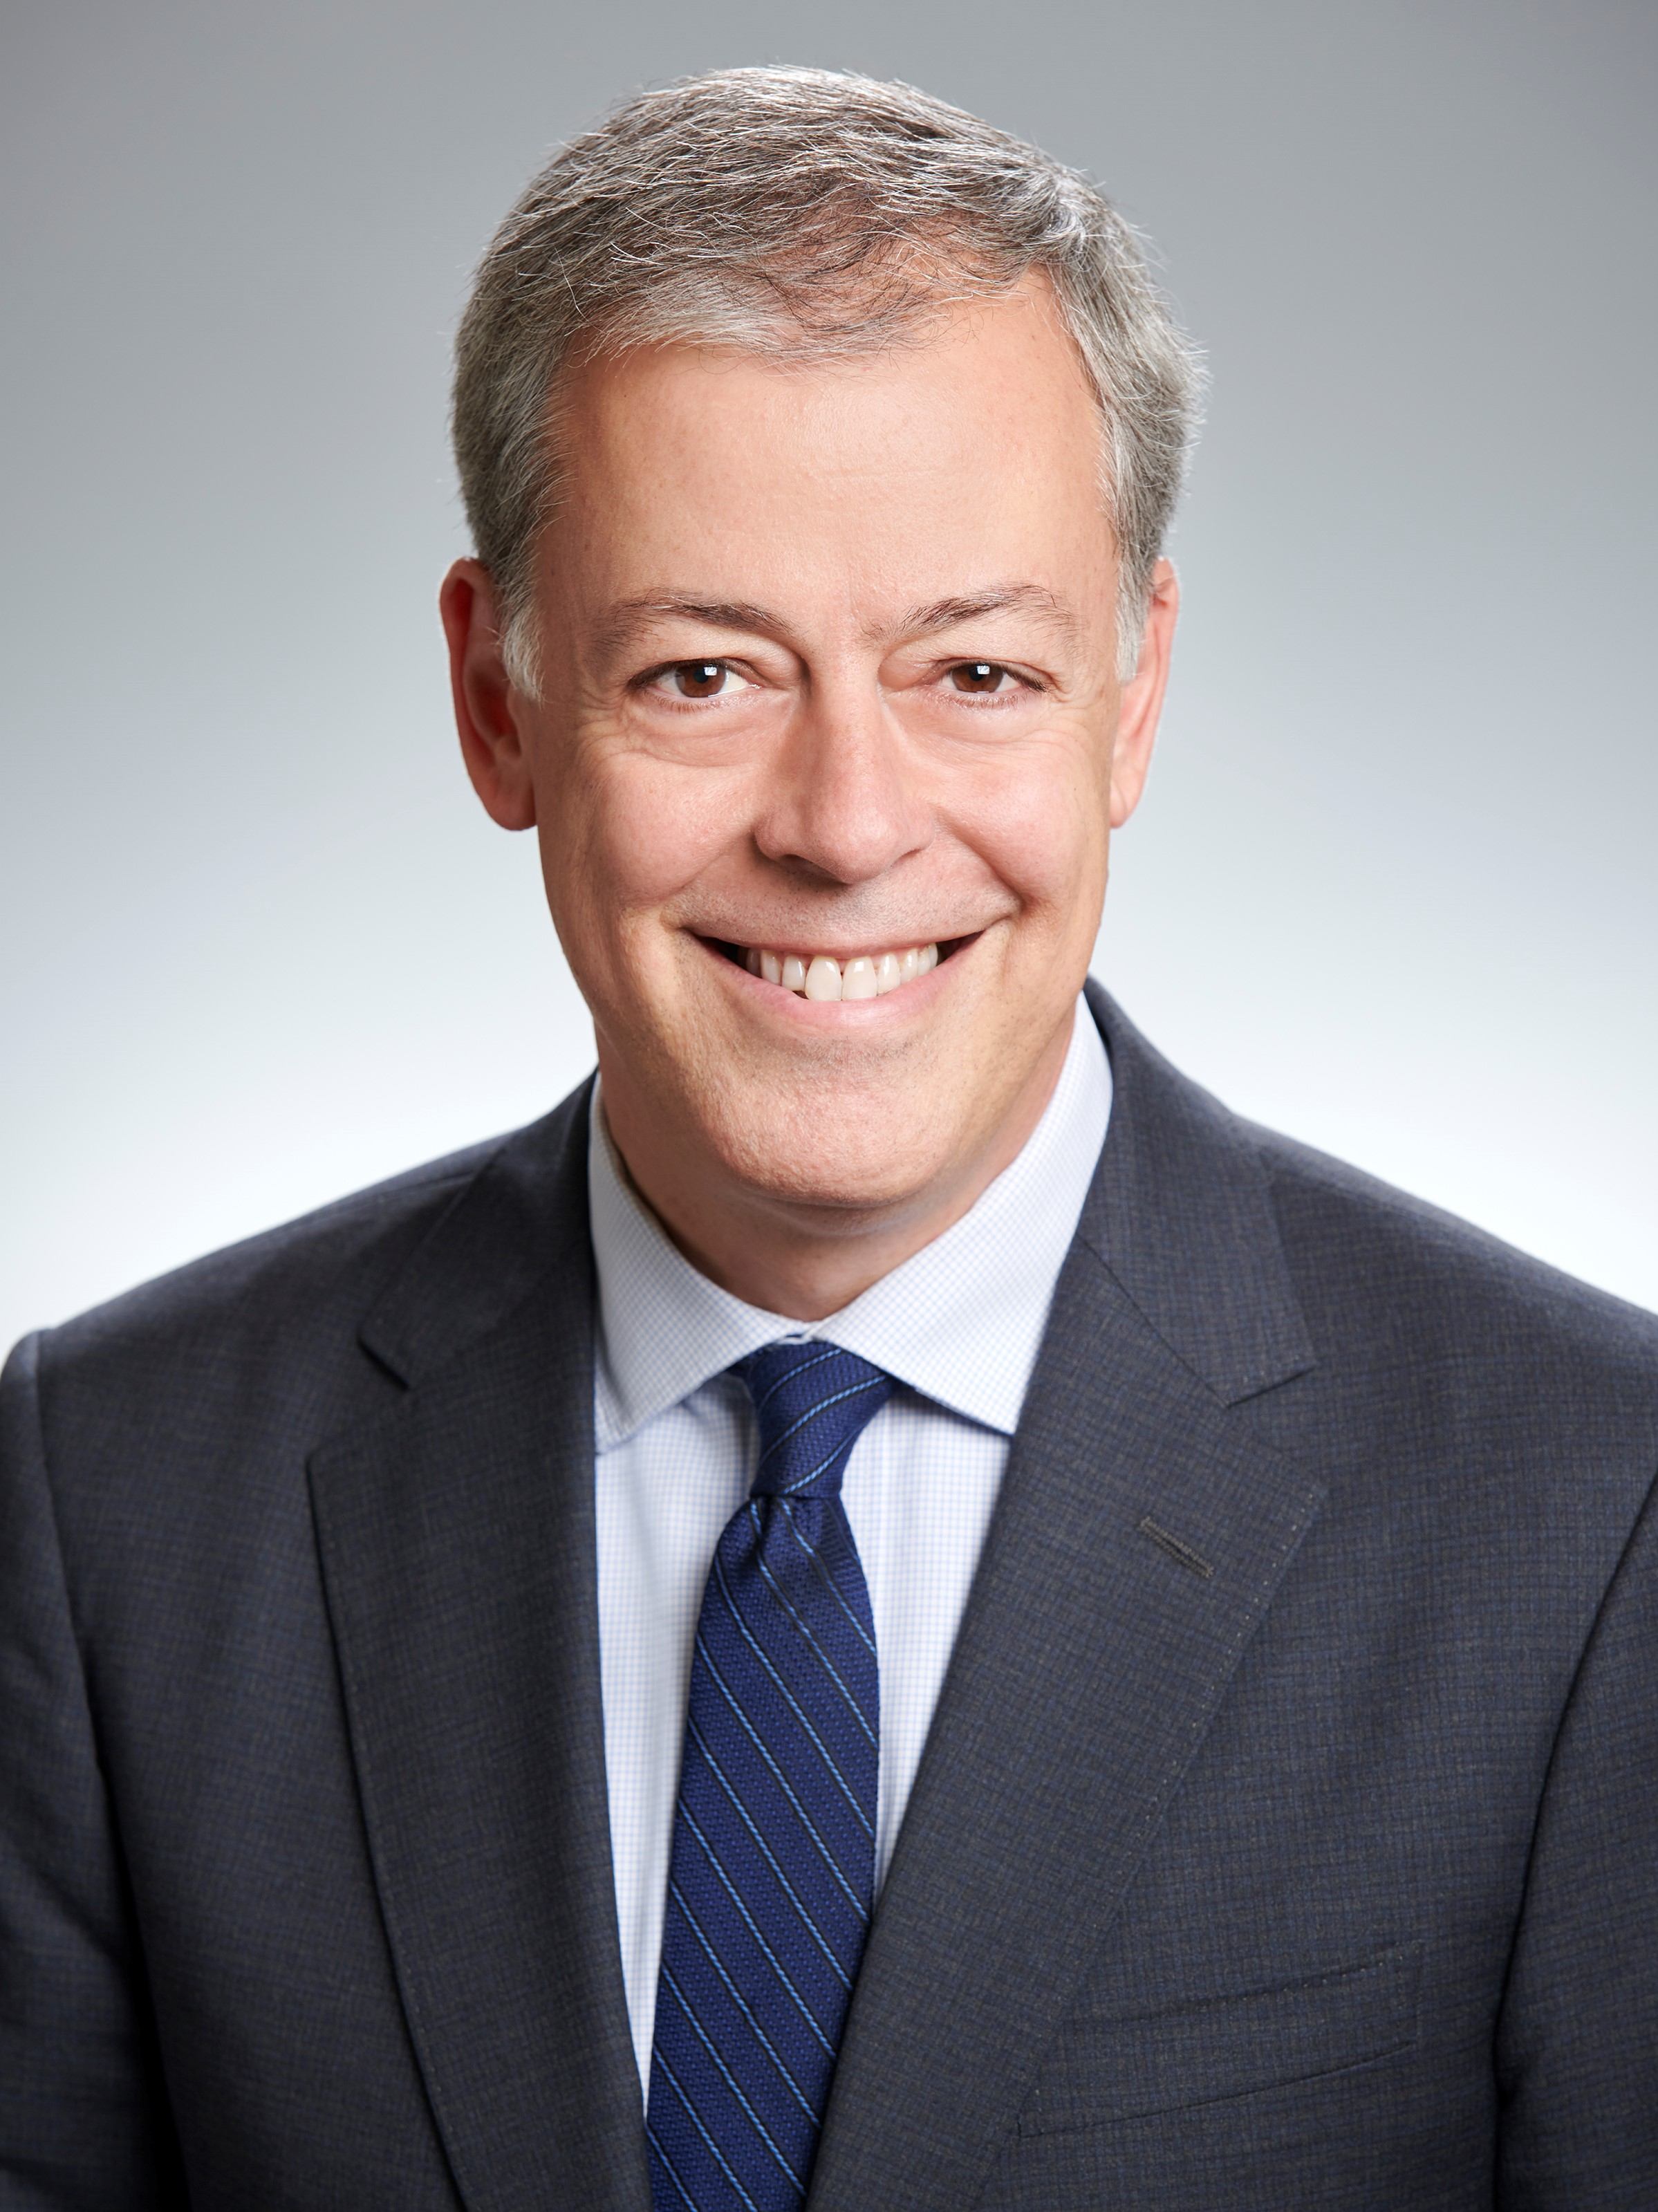 <hr></hr> Nicolas Caprio <br>Chief Operating Officer & General Manager <br>Rexall